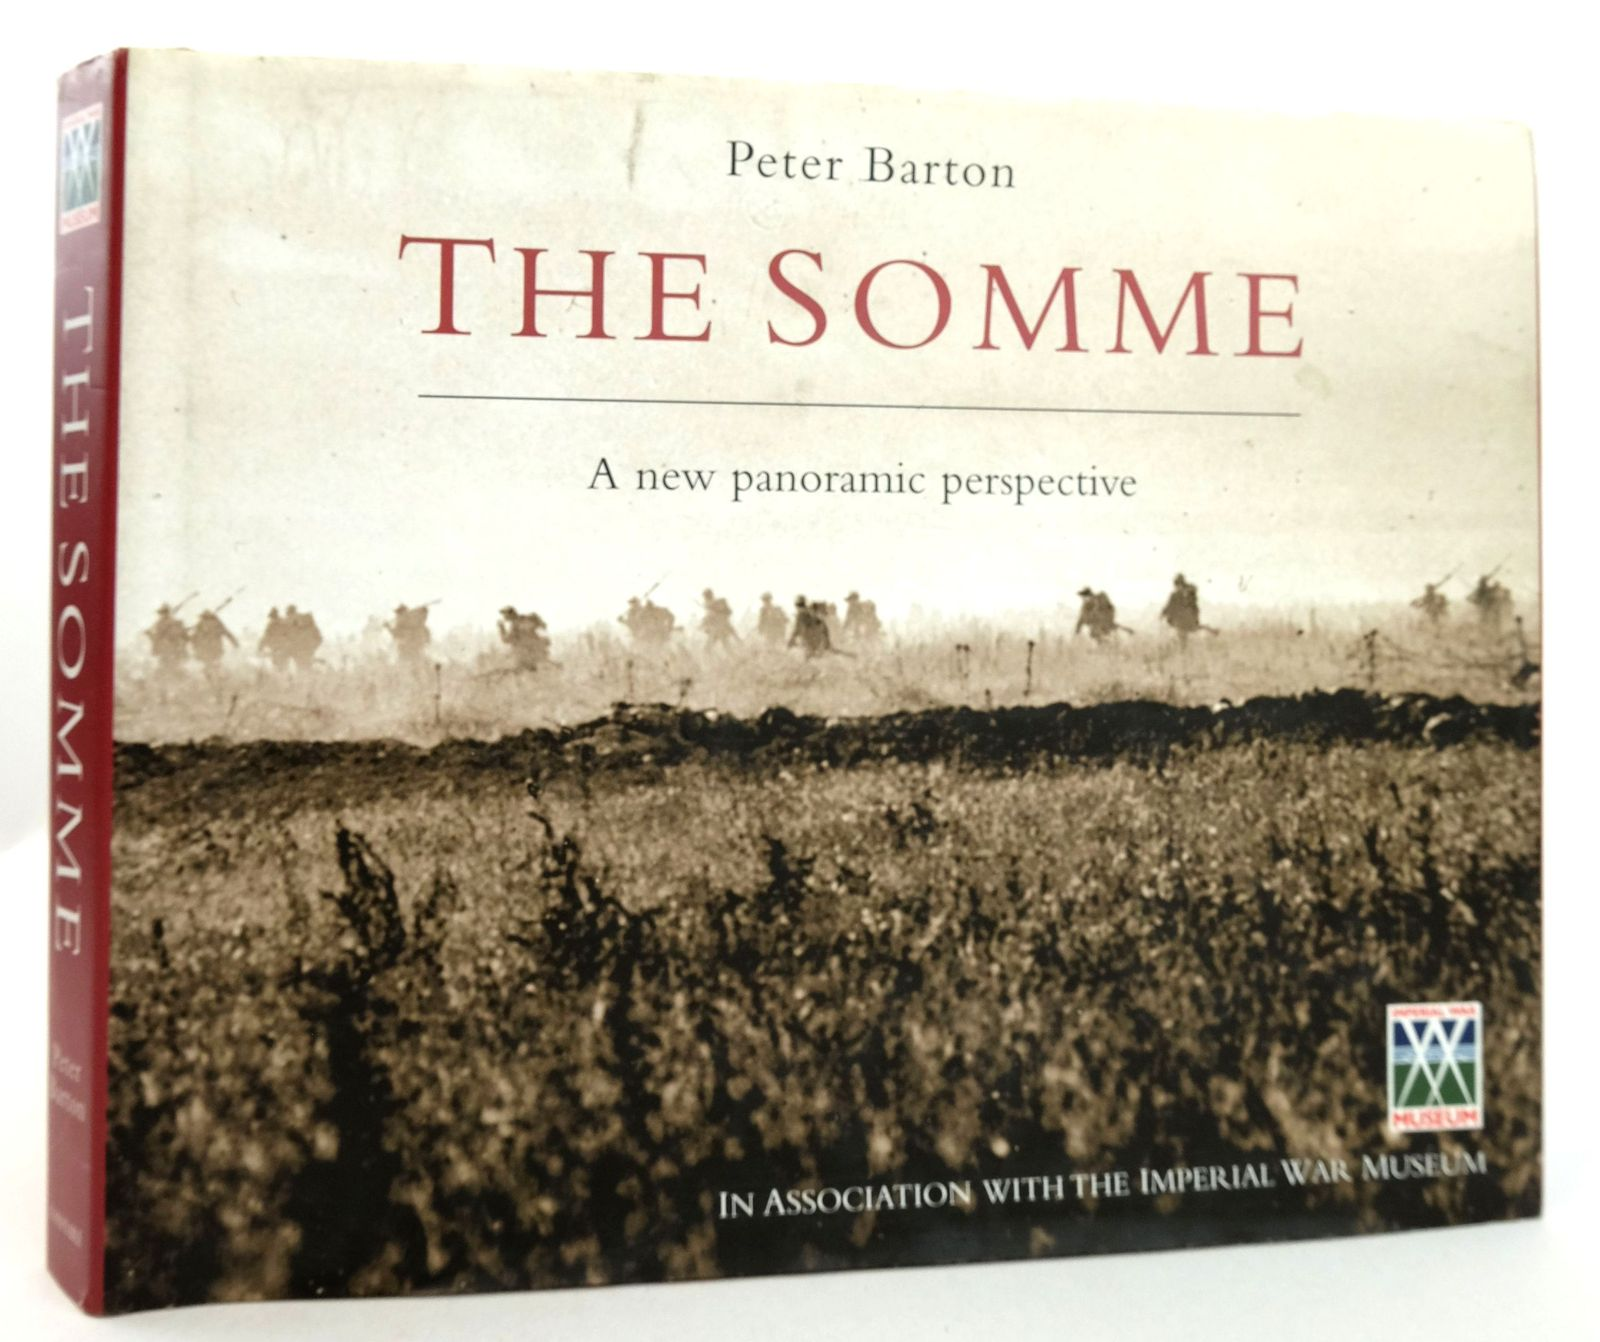 Photo of THE SOMME written by Barton, Peter published by Constable (STOCK CODE: 1819533)  for sale by Stella & Rose's Books